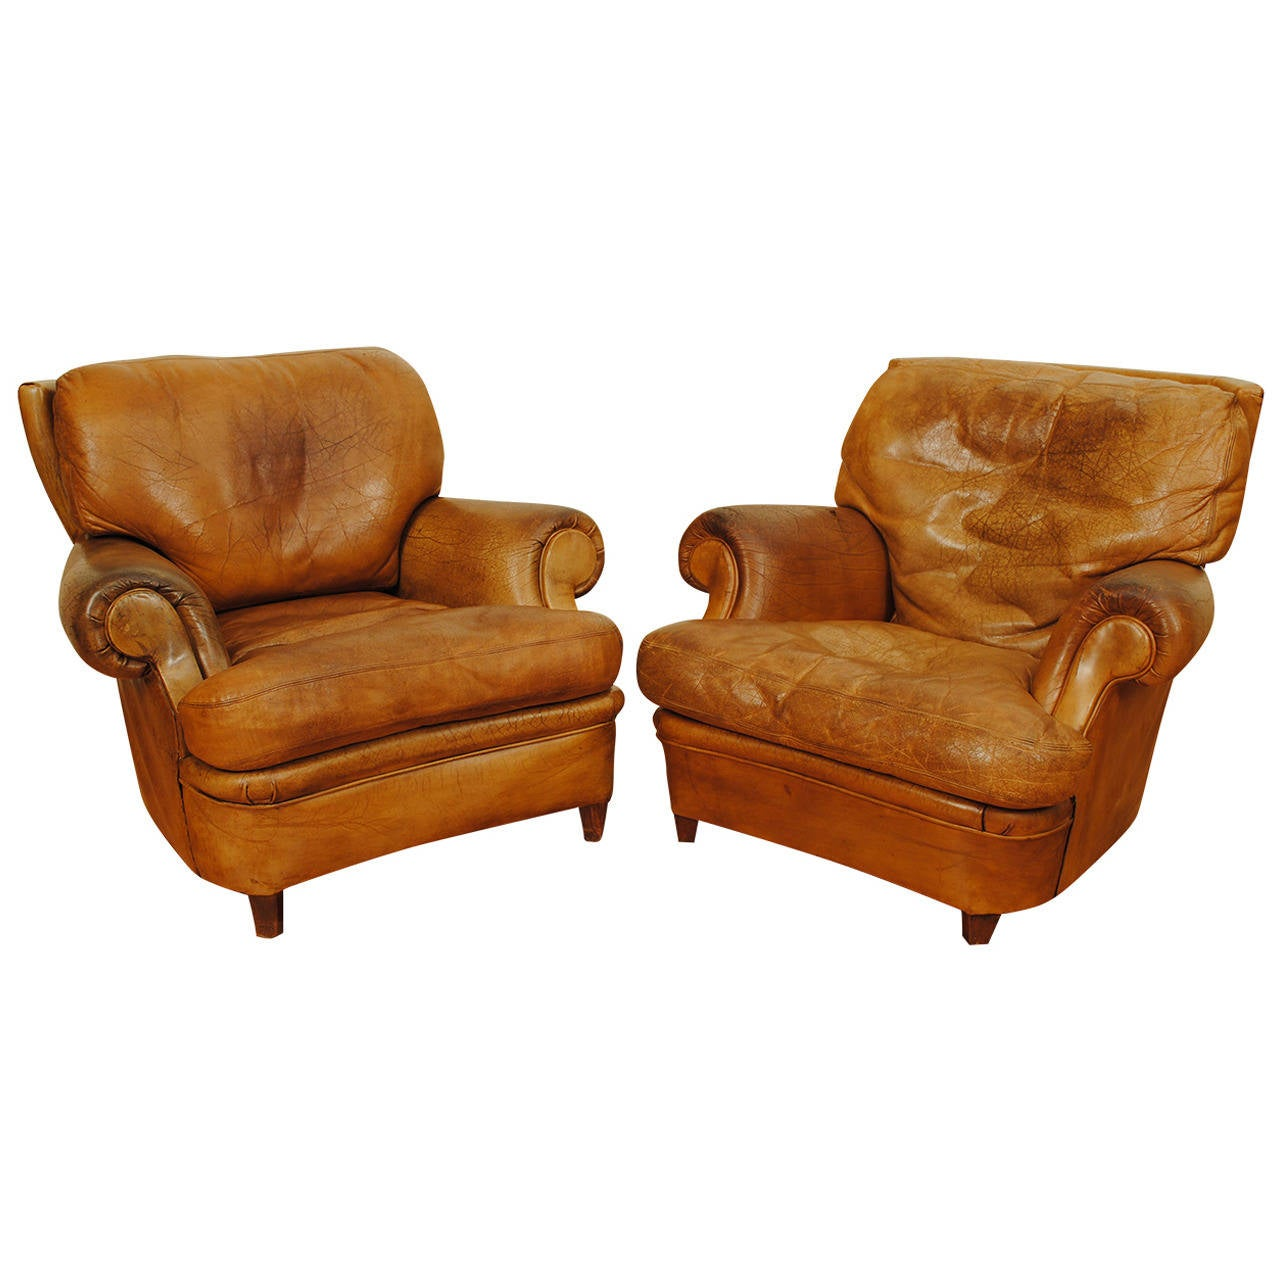 Near pair of french leather upholstered club chairs at 1stdibs for Small club chairs upholstered